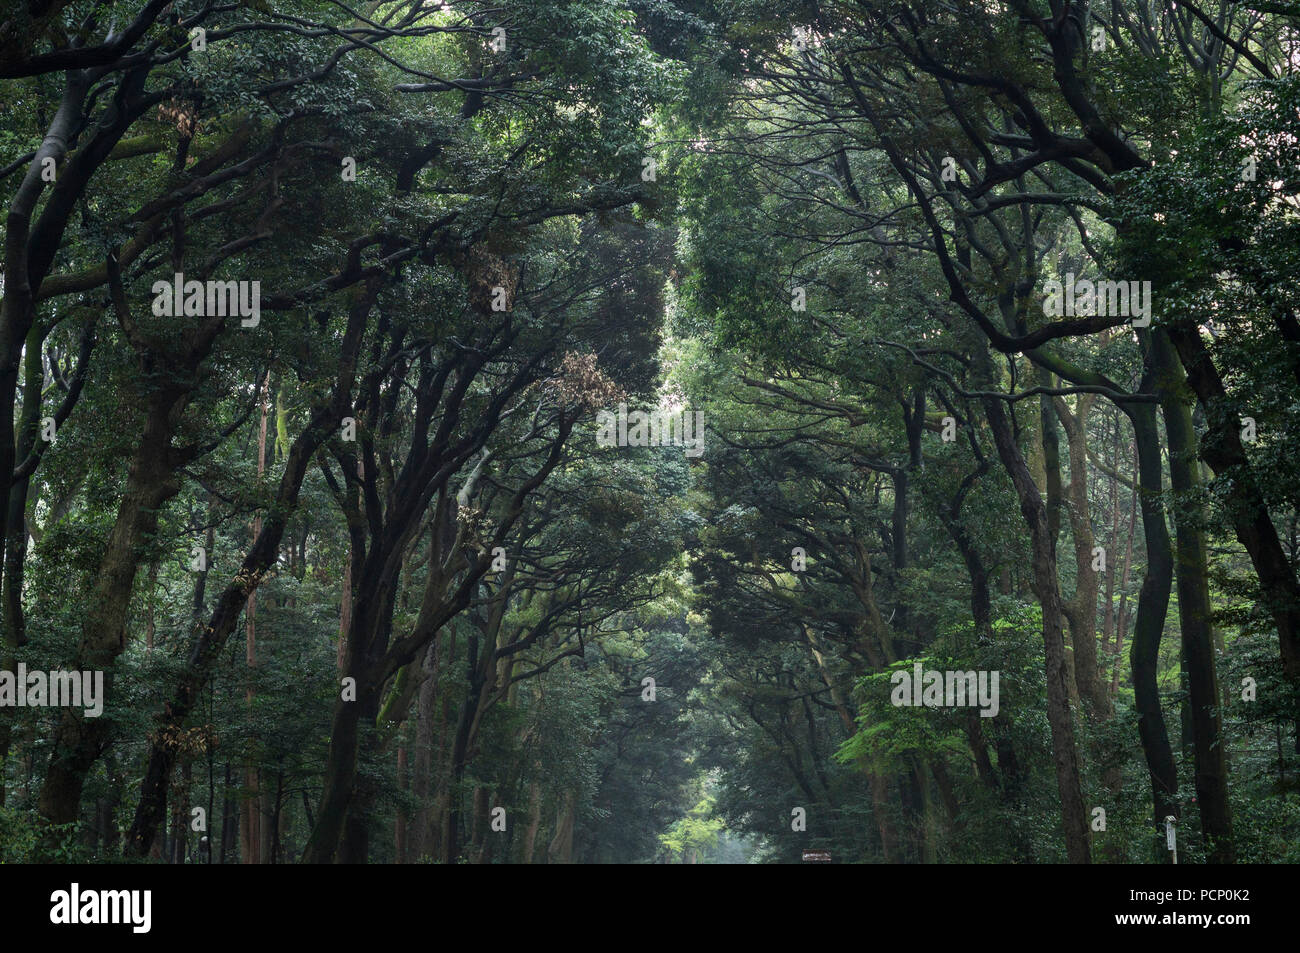 The best selection of royalty free dense forest vector art, graphics and stock illustrations. A Dense Forest In Japan Separated By A Path Stock Photo Alamy